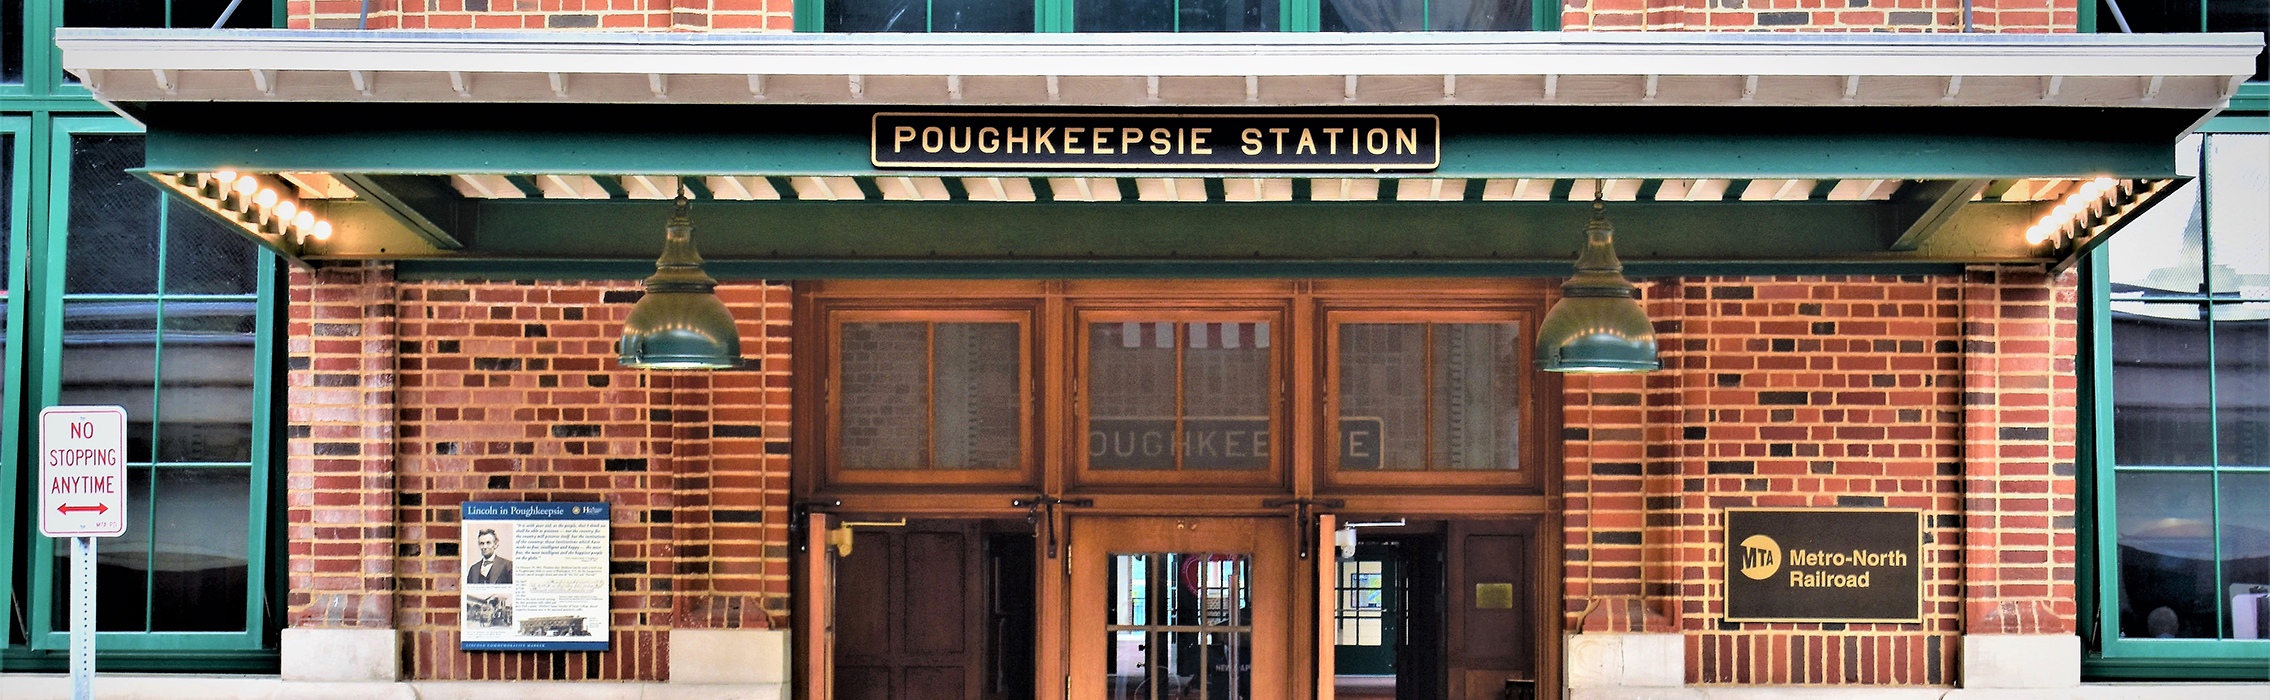 Photograph of Poughkeepsie Station